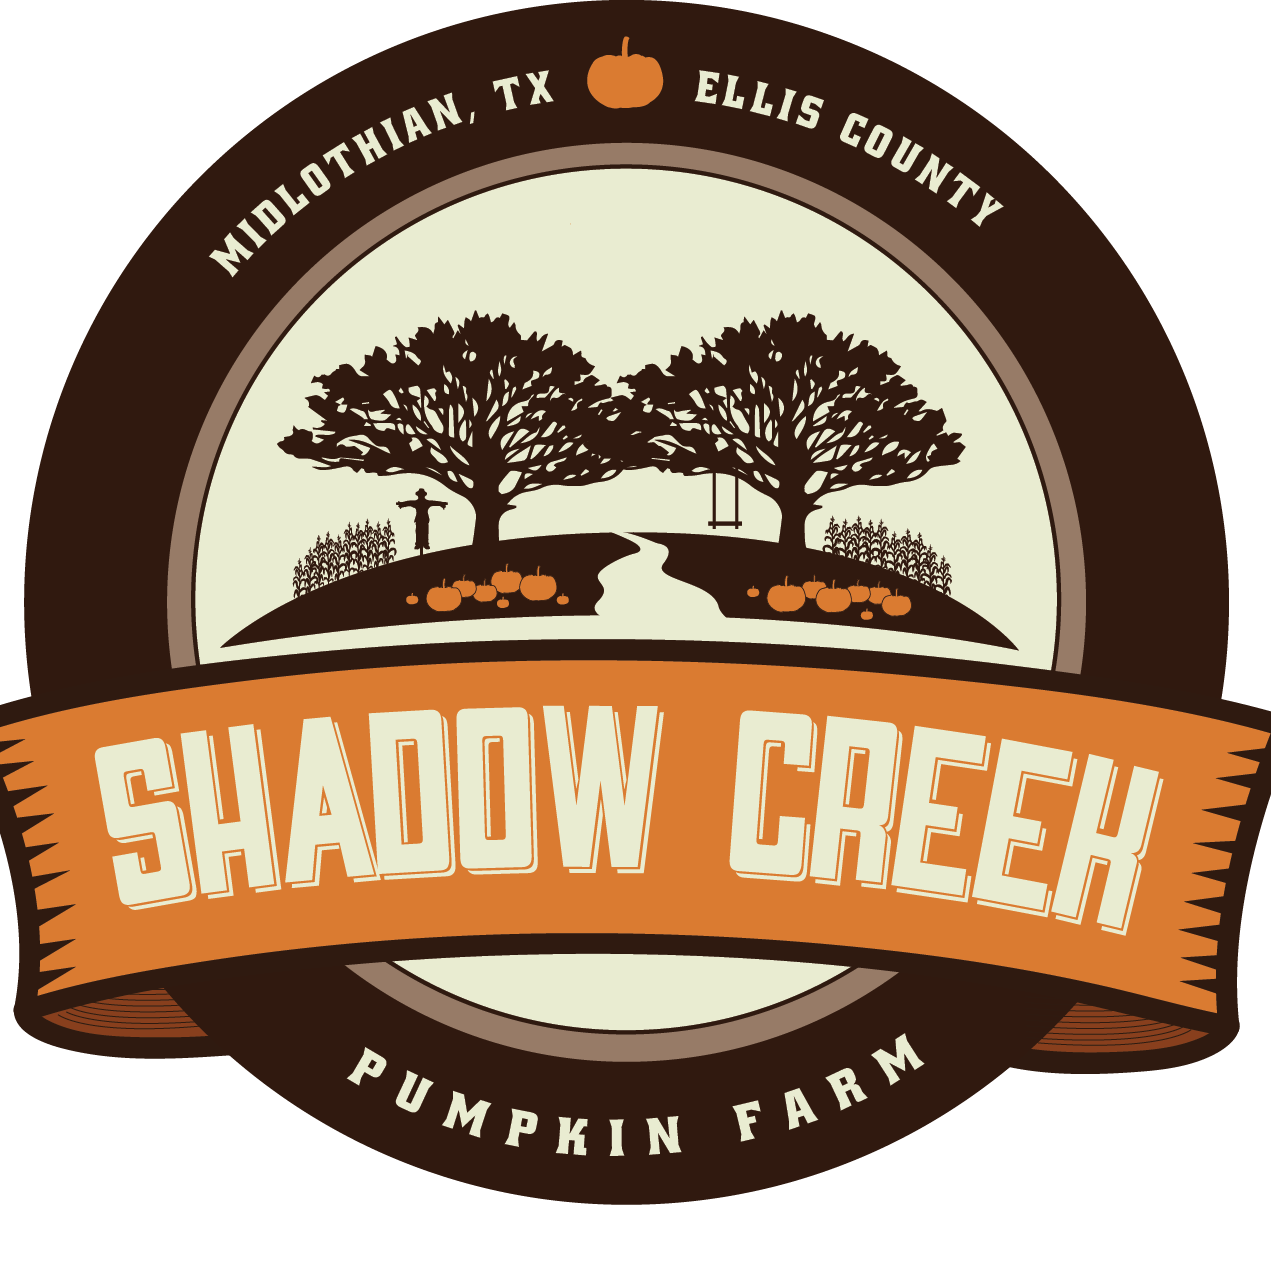 Shadow Creek Pumpkin Farm image 4